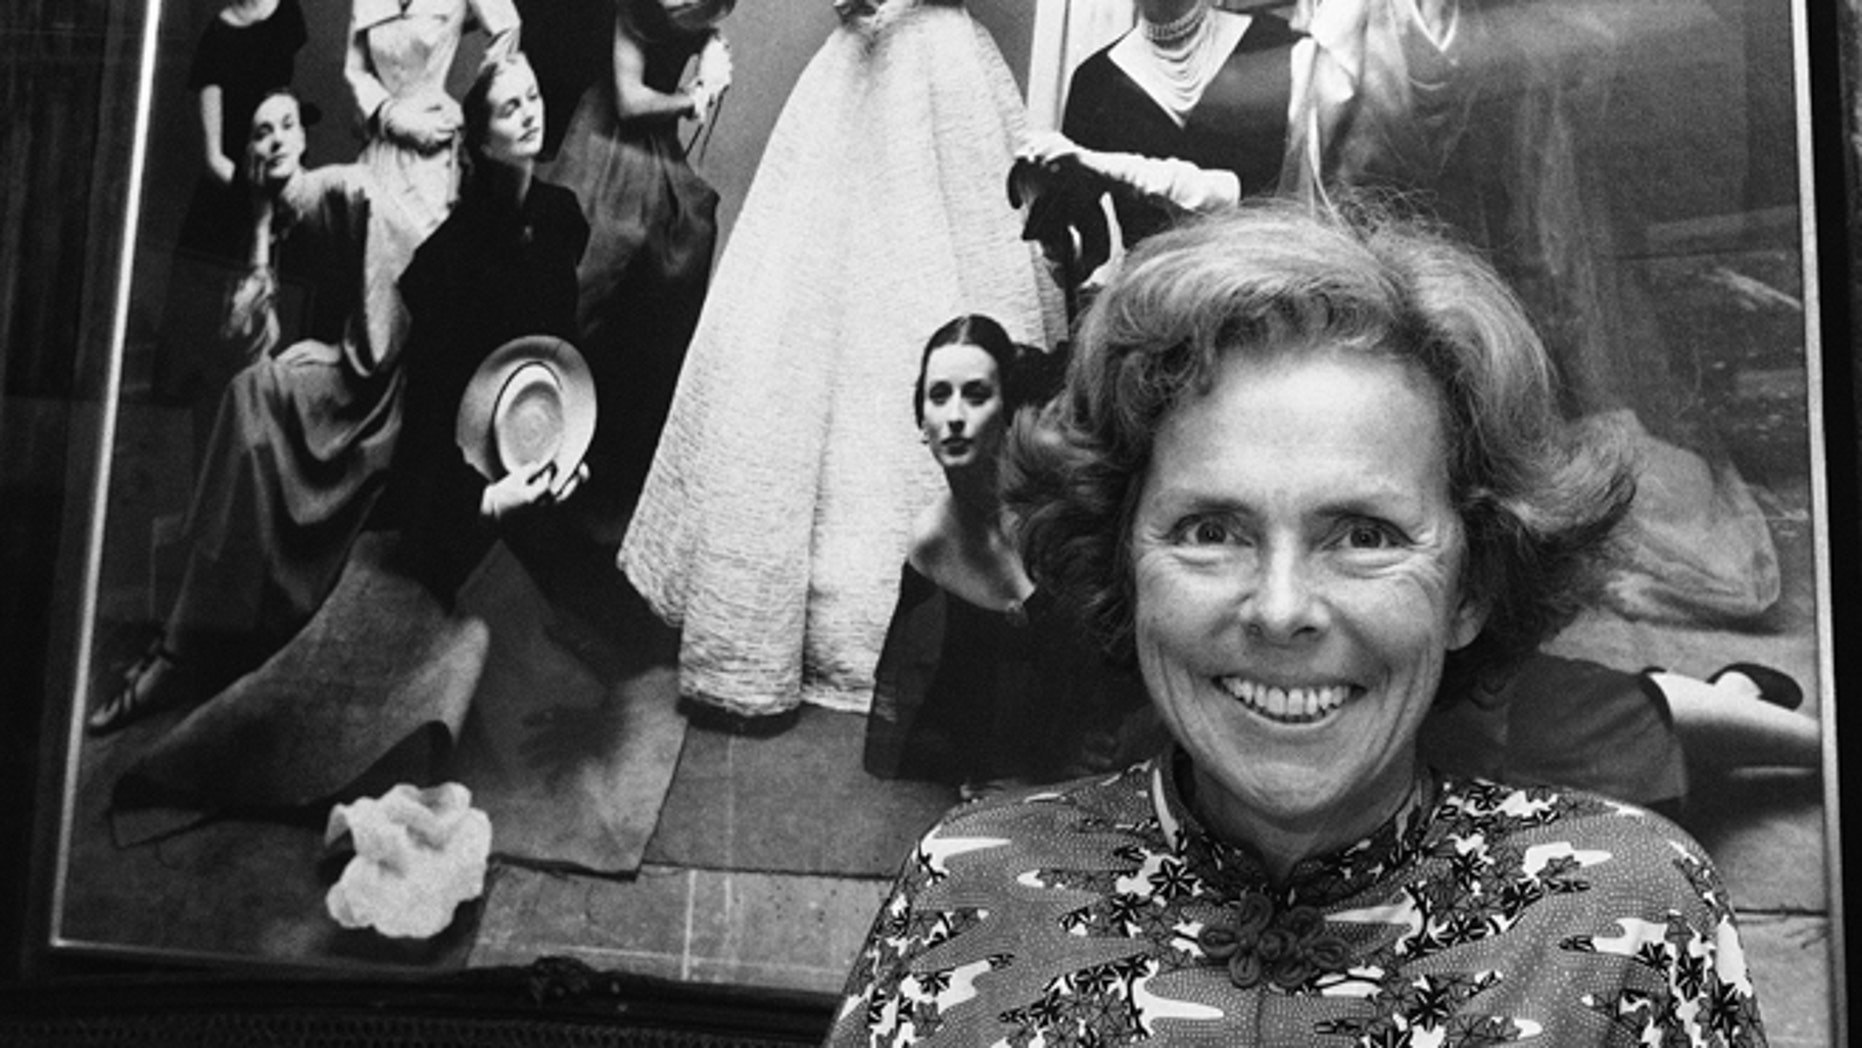 Modeling agency founder eileen ford who shaped a generations standards of beauty as she built an empire and launched the careers of candice bergen